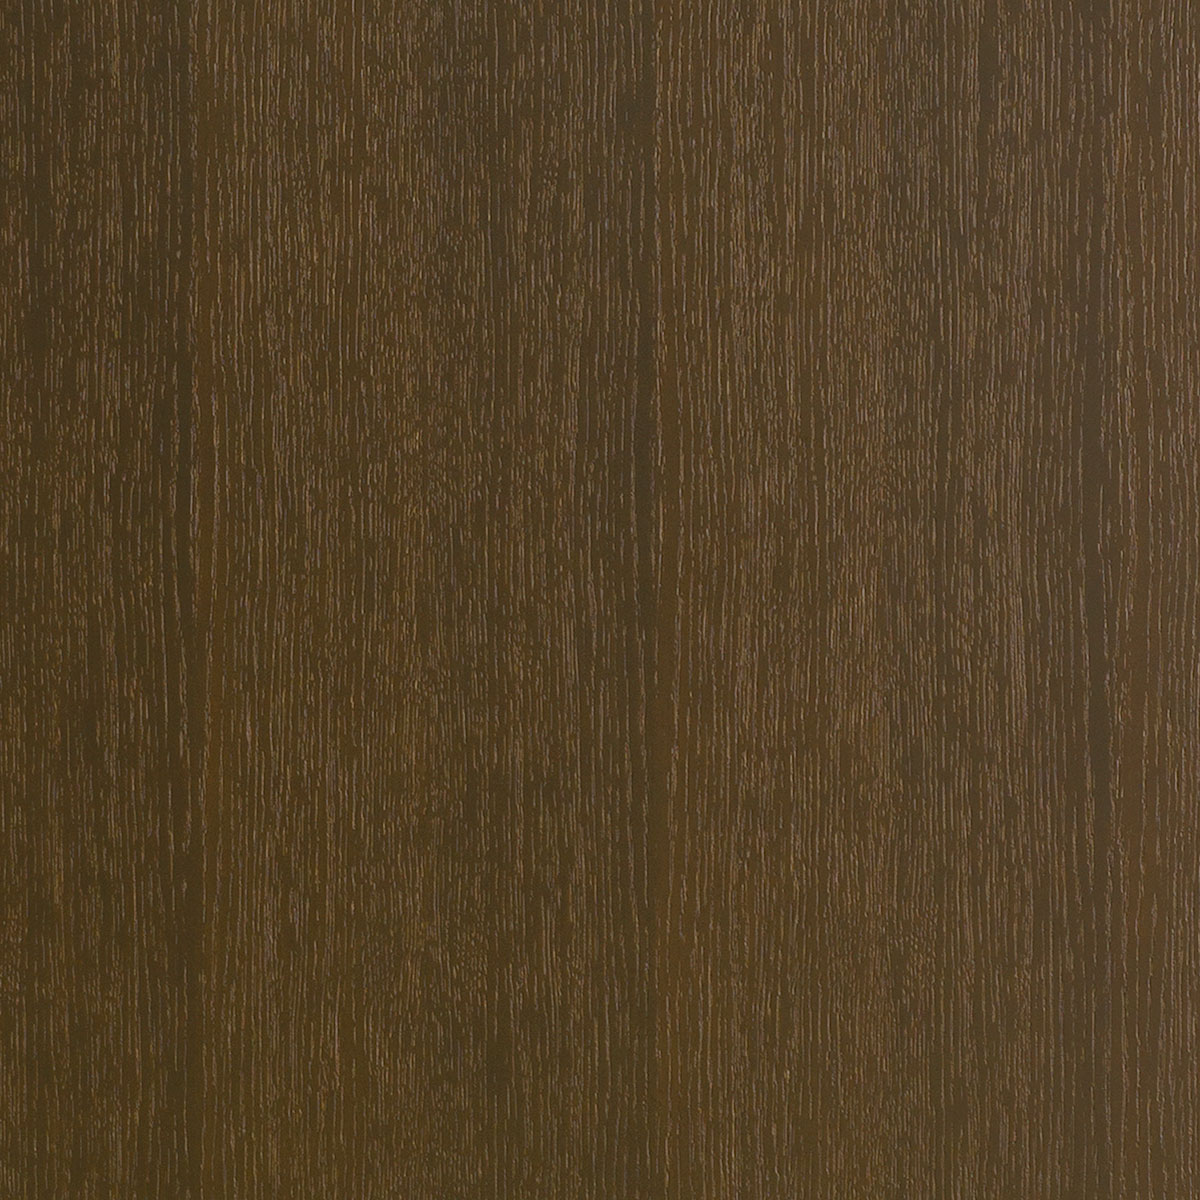 Oak Wood, Earth Finish